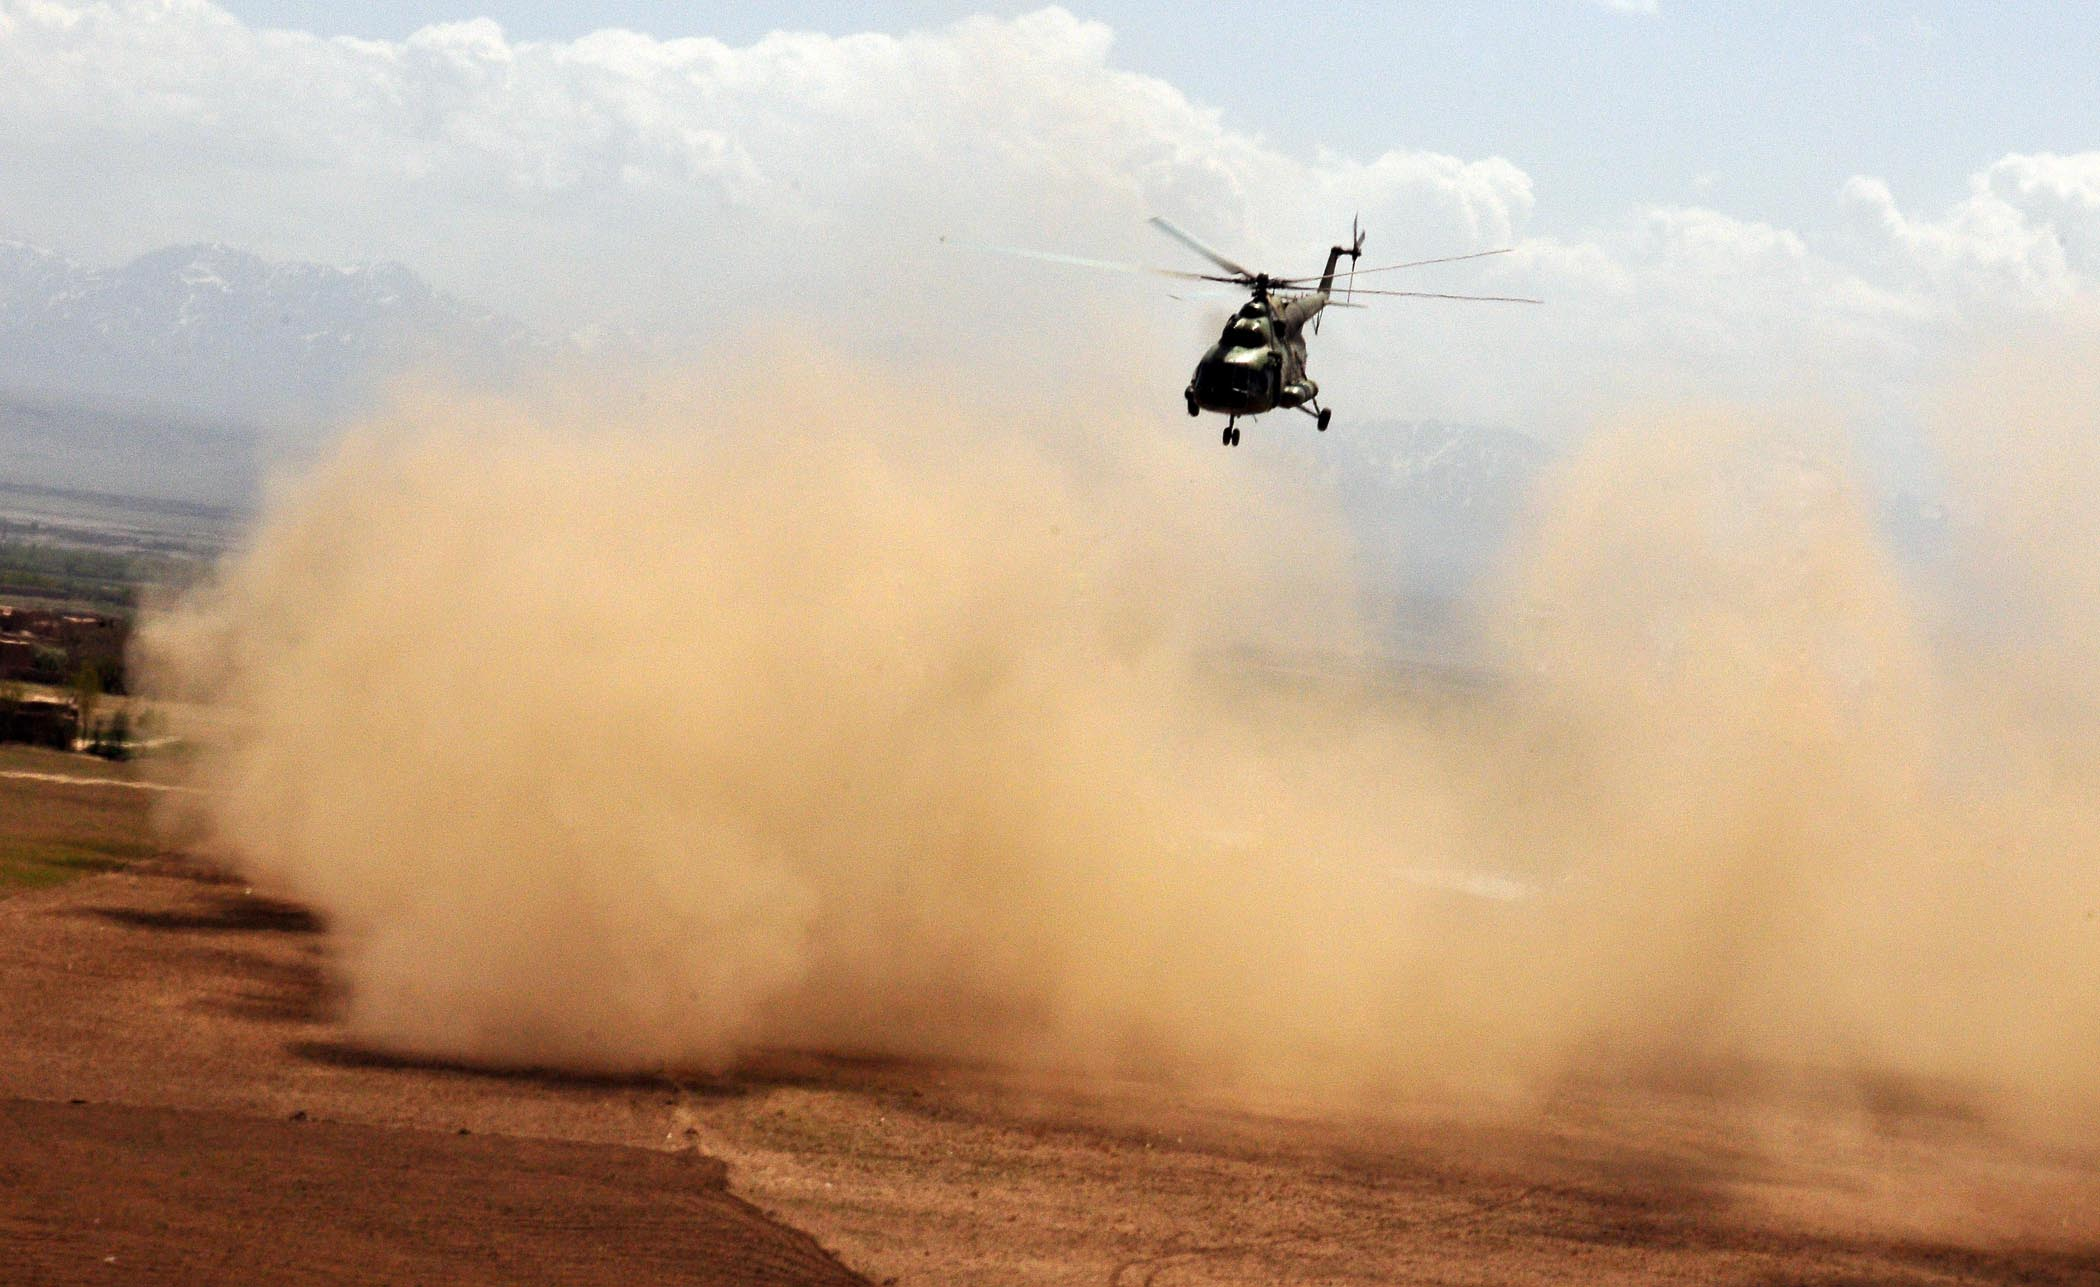 uh 60 helicopter with File An Afghan National Army Air Corps Helicopter Causes A Dust Storm During Lift Off   4489794478 on File A U S  Army crew chief scans for possible threats after his UH 60 Black Hawk helicopter departed Al Asad Airbase  Iraq  with Secretary of Defense Robert M  Gates aboard Sept 100901 F DQ383 005 also File Griffin HT1 Helicopter additionally Bell Ah 1w Super Cobra Helicopter likewise Collision Civilian Drone Army Helicopter further Pic Detail.